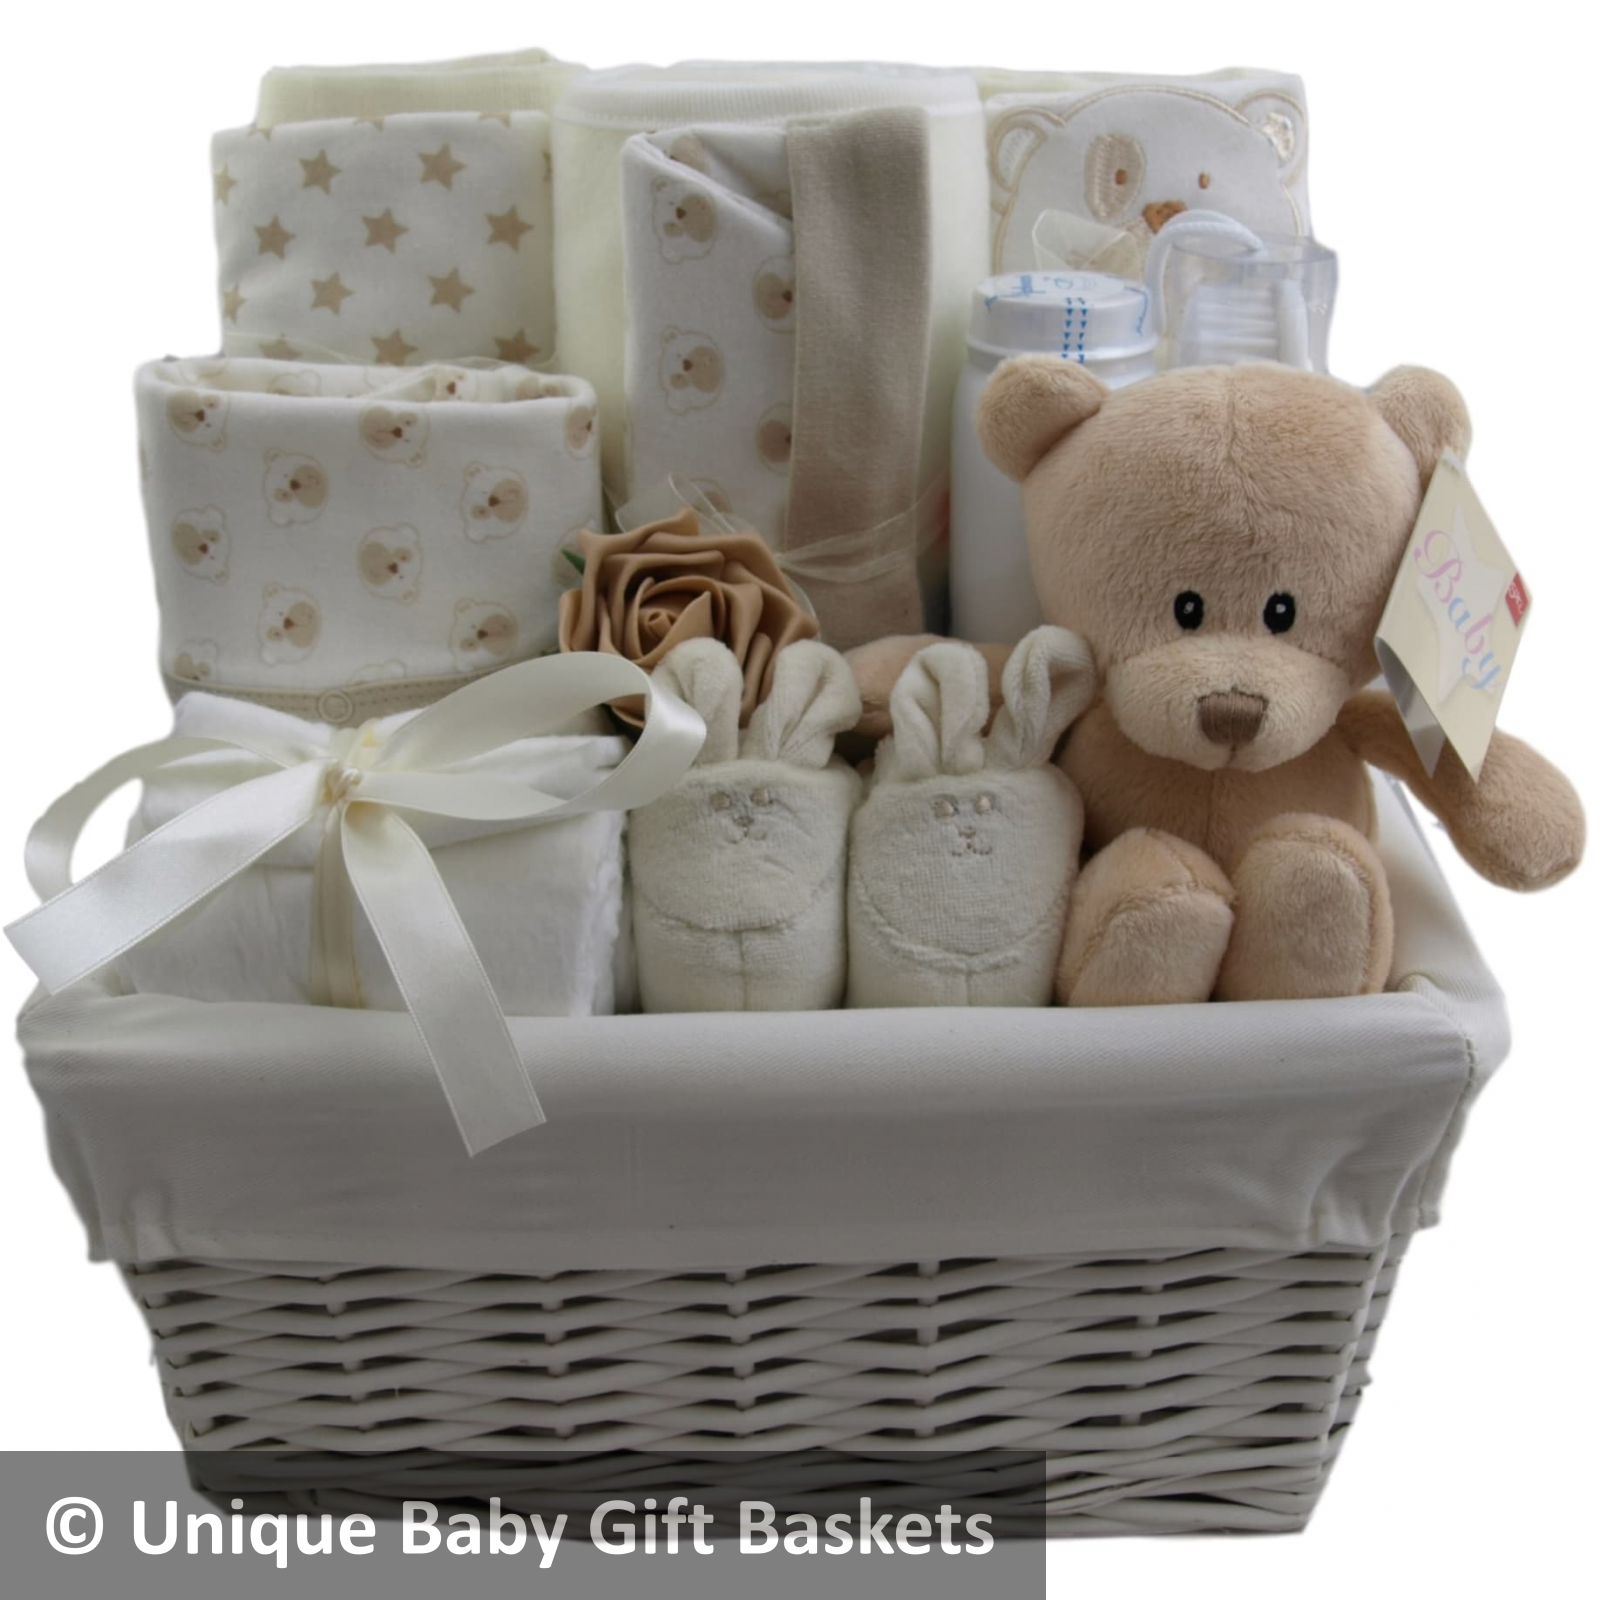 Baby Gift Designer : Meet unique baby gift baskets window to the womb